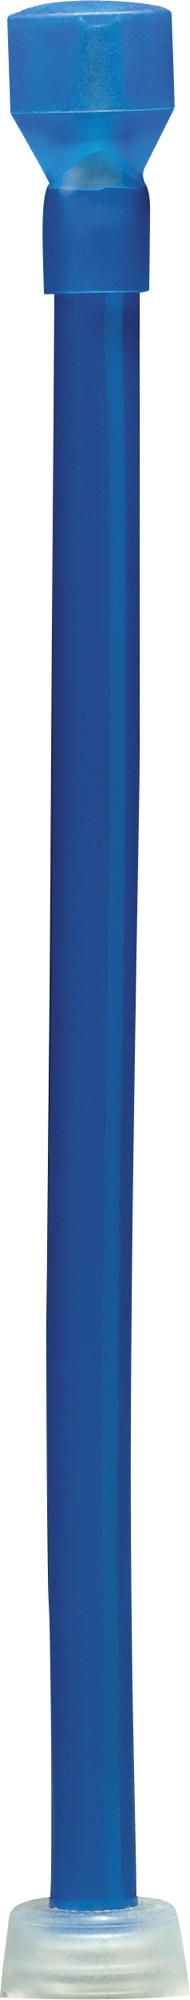 Camelbak Quick Stow Flask Tube Adapter | item_misc